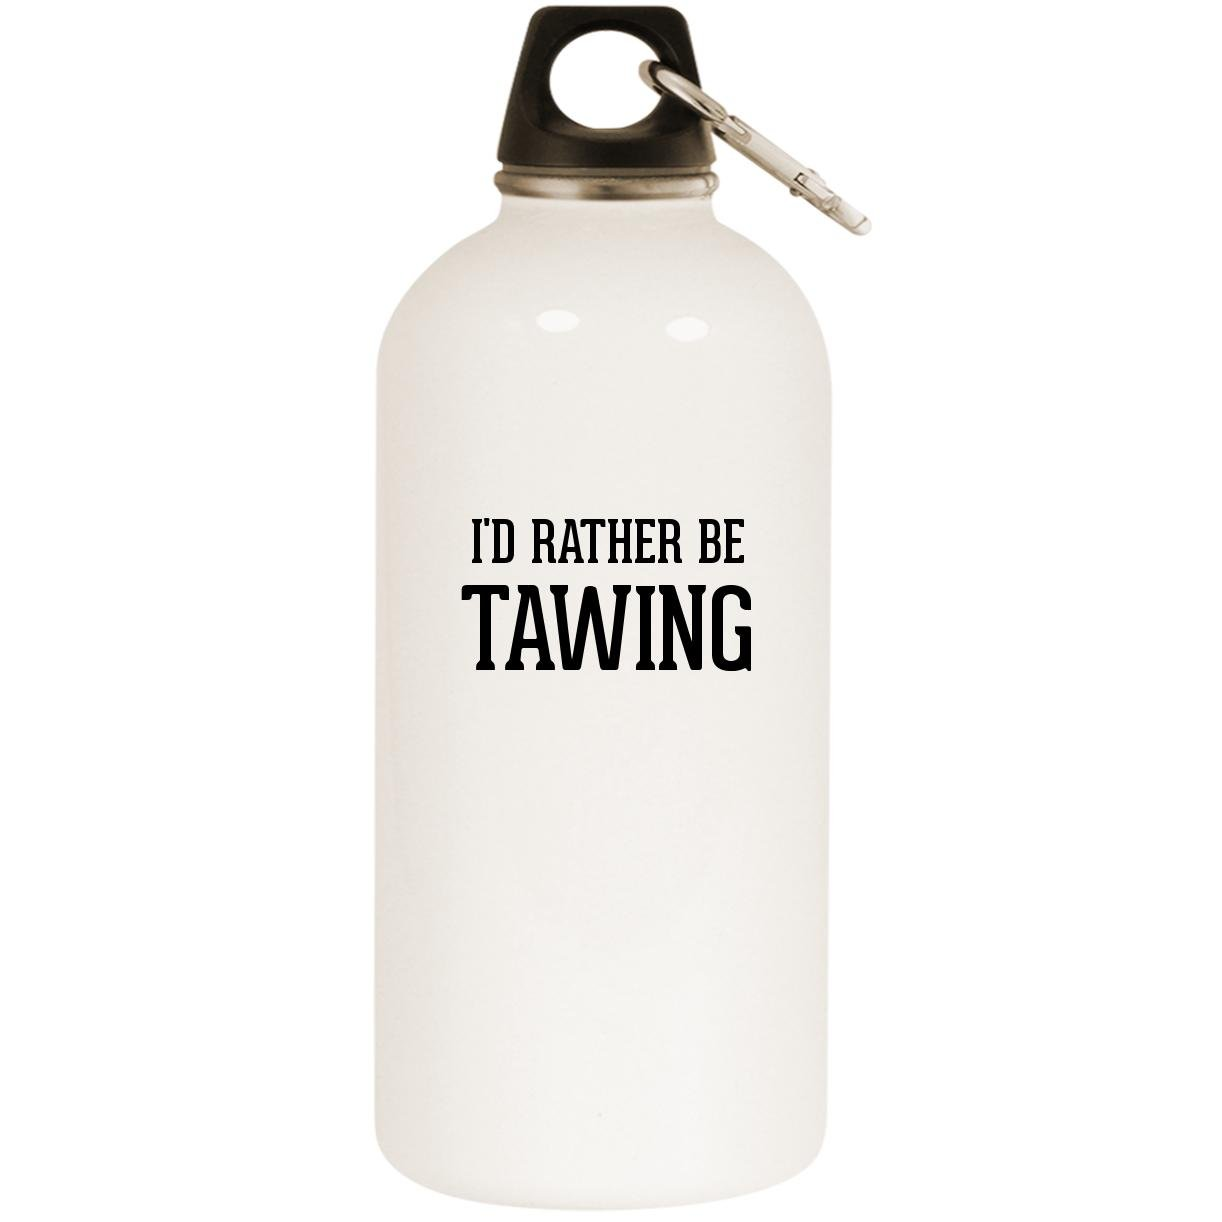 I'd Rather Be TAWING - White 20oz Stainless Steel Water Bottle with Carabiner